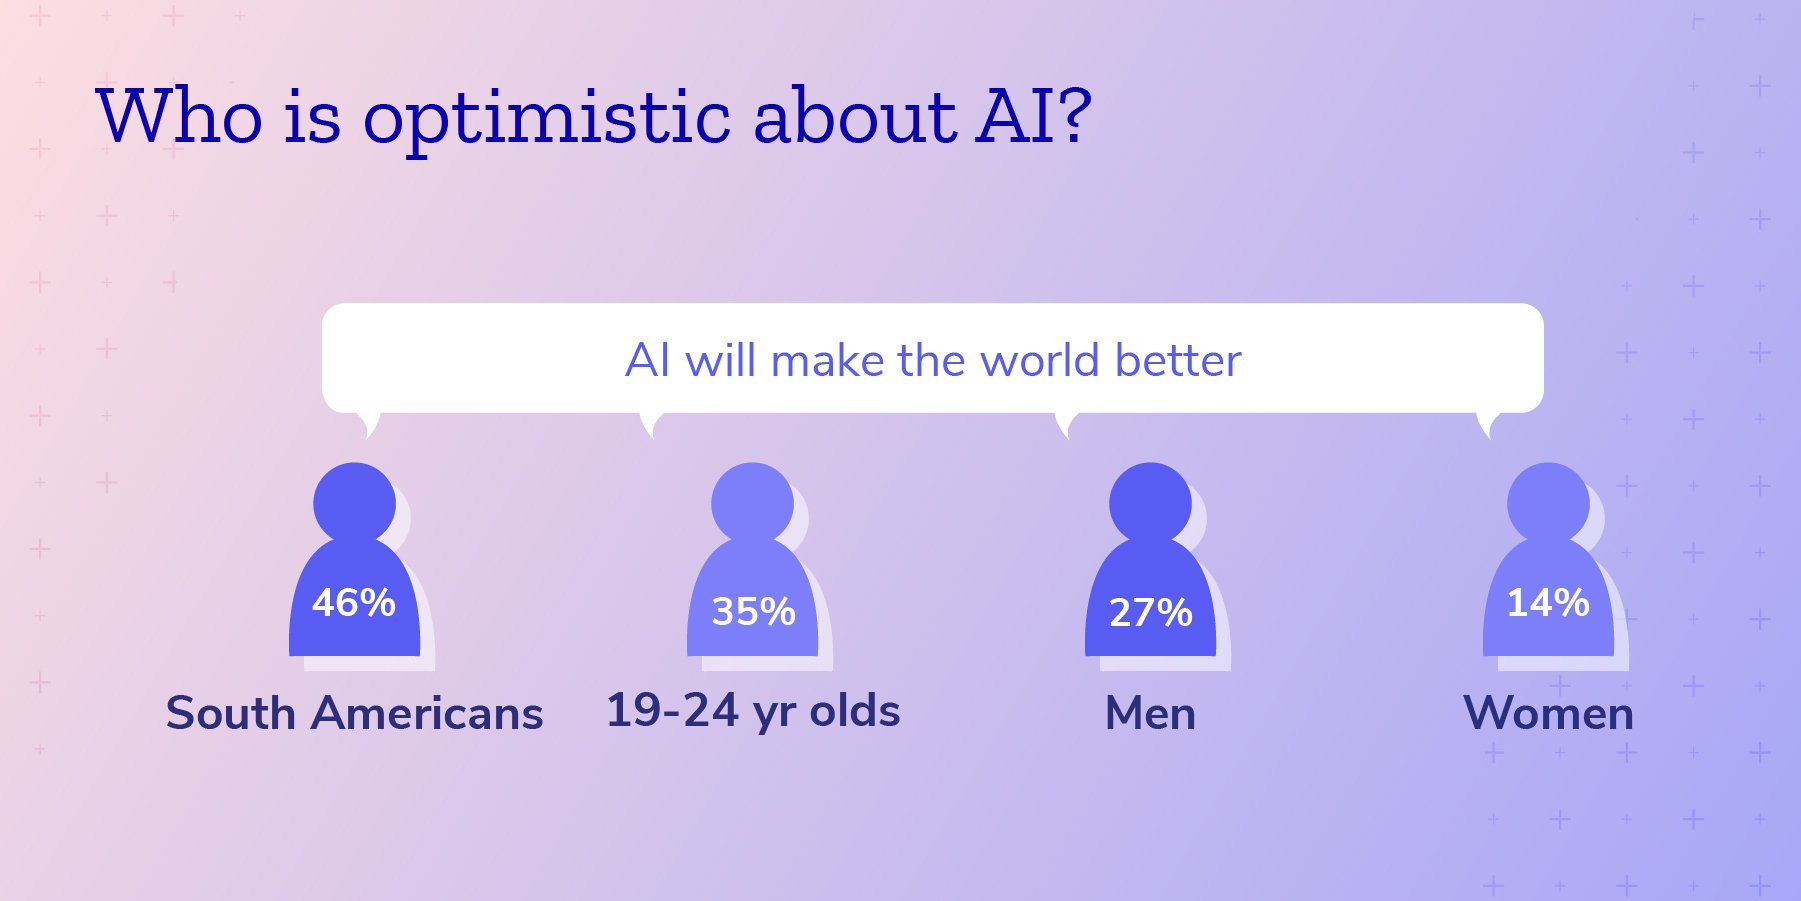 Who is optimisic about AI?